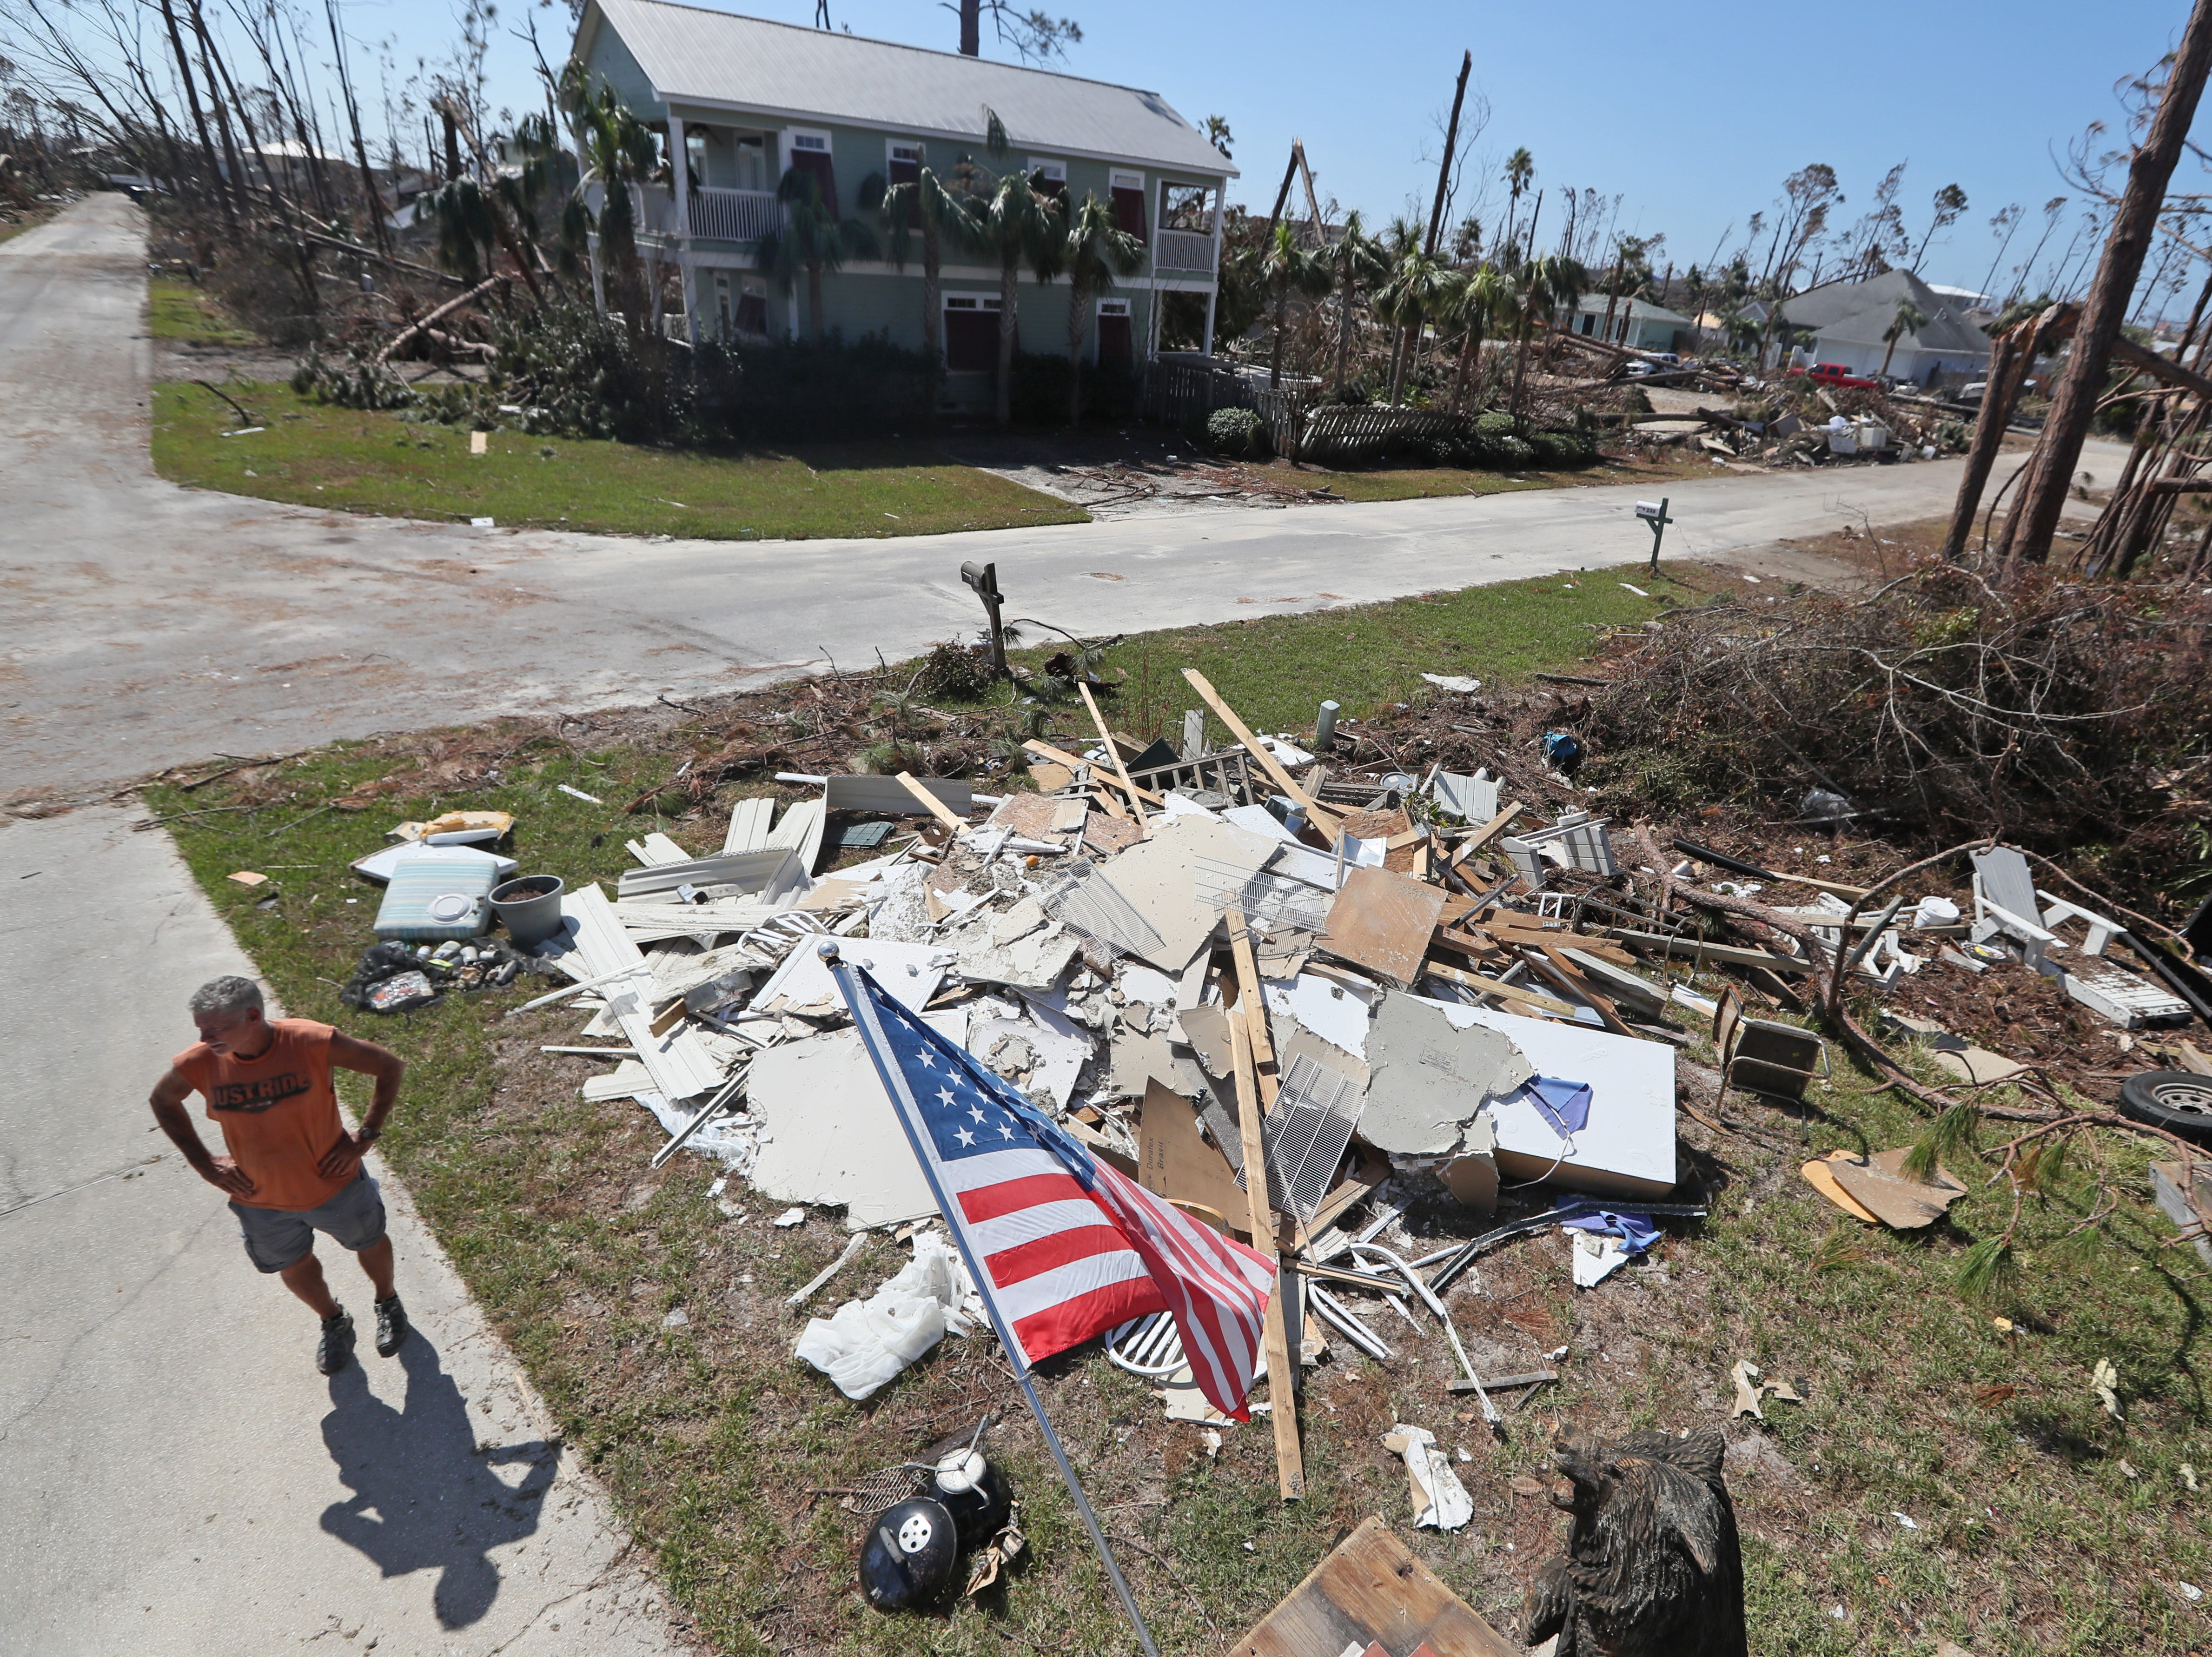 Mexico Beach resident Rick Barnes stands on his street next to his second-floor home, which was left destroyed on Wednesday, Oct. 17, 2018, one week after Hurricane Michael ripped through the coastal Florida town.